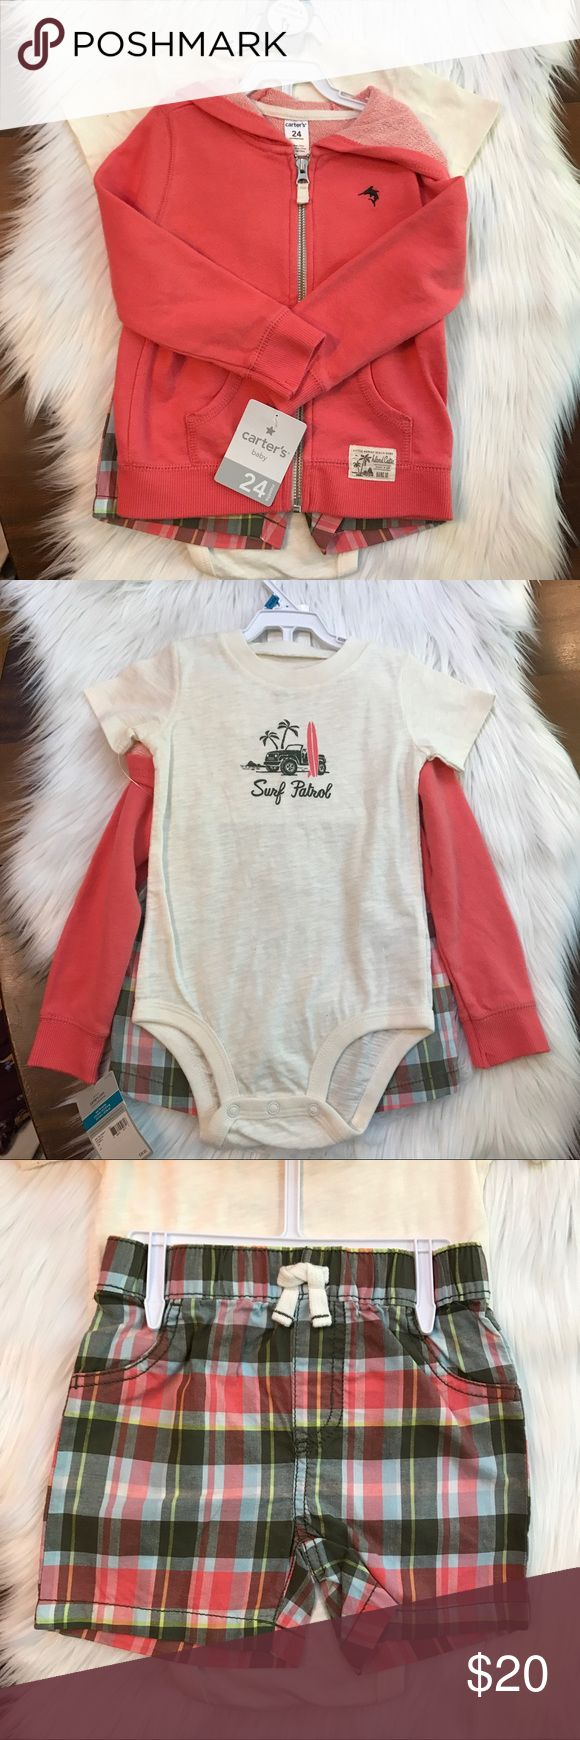 """Carter's 3 Piece Shorts Hoodie Bodysuit Set Surf This is an adorable 3 piece boys set. It features a cozy watermelon colored hoodie, preppy plaid shorts, and a cool surfing themed """"Surf Patrol"""" onesie bodysuit. 100% cotton. Fits a baby 27.5-30 pounds, and 32.5-34 inches long. Carter's 24 month size is 18-24 months. Carter's Matching Sets"""